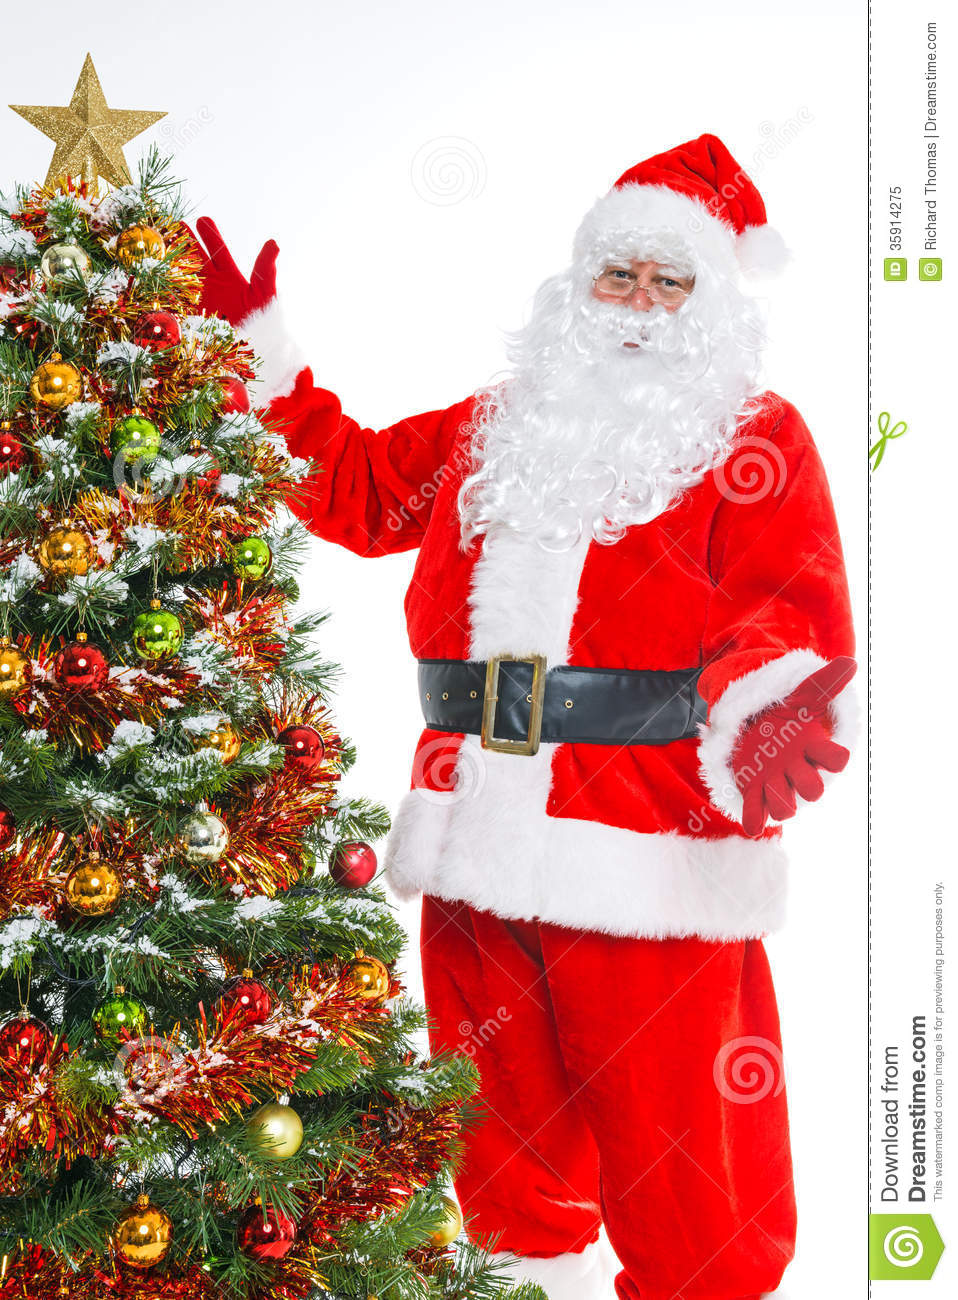 Santa And Christmas Tree Isolated Royalty Free Stock Photo - Image ...